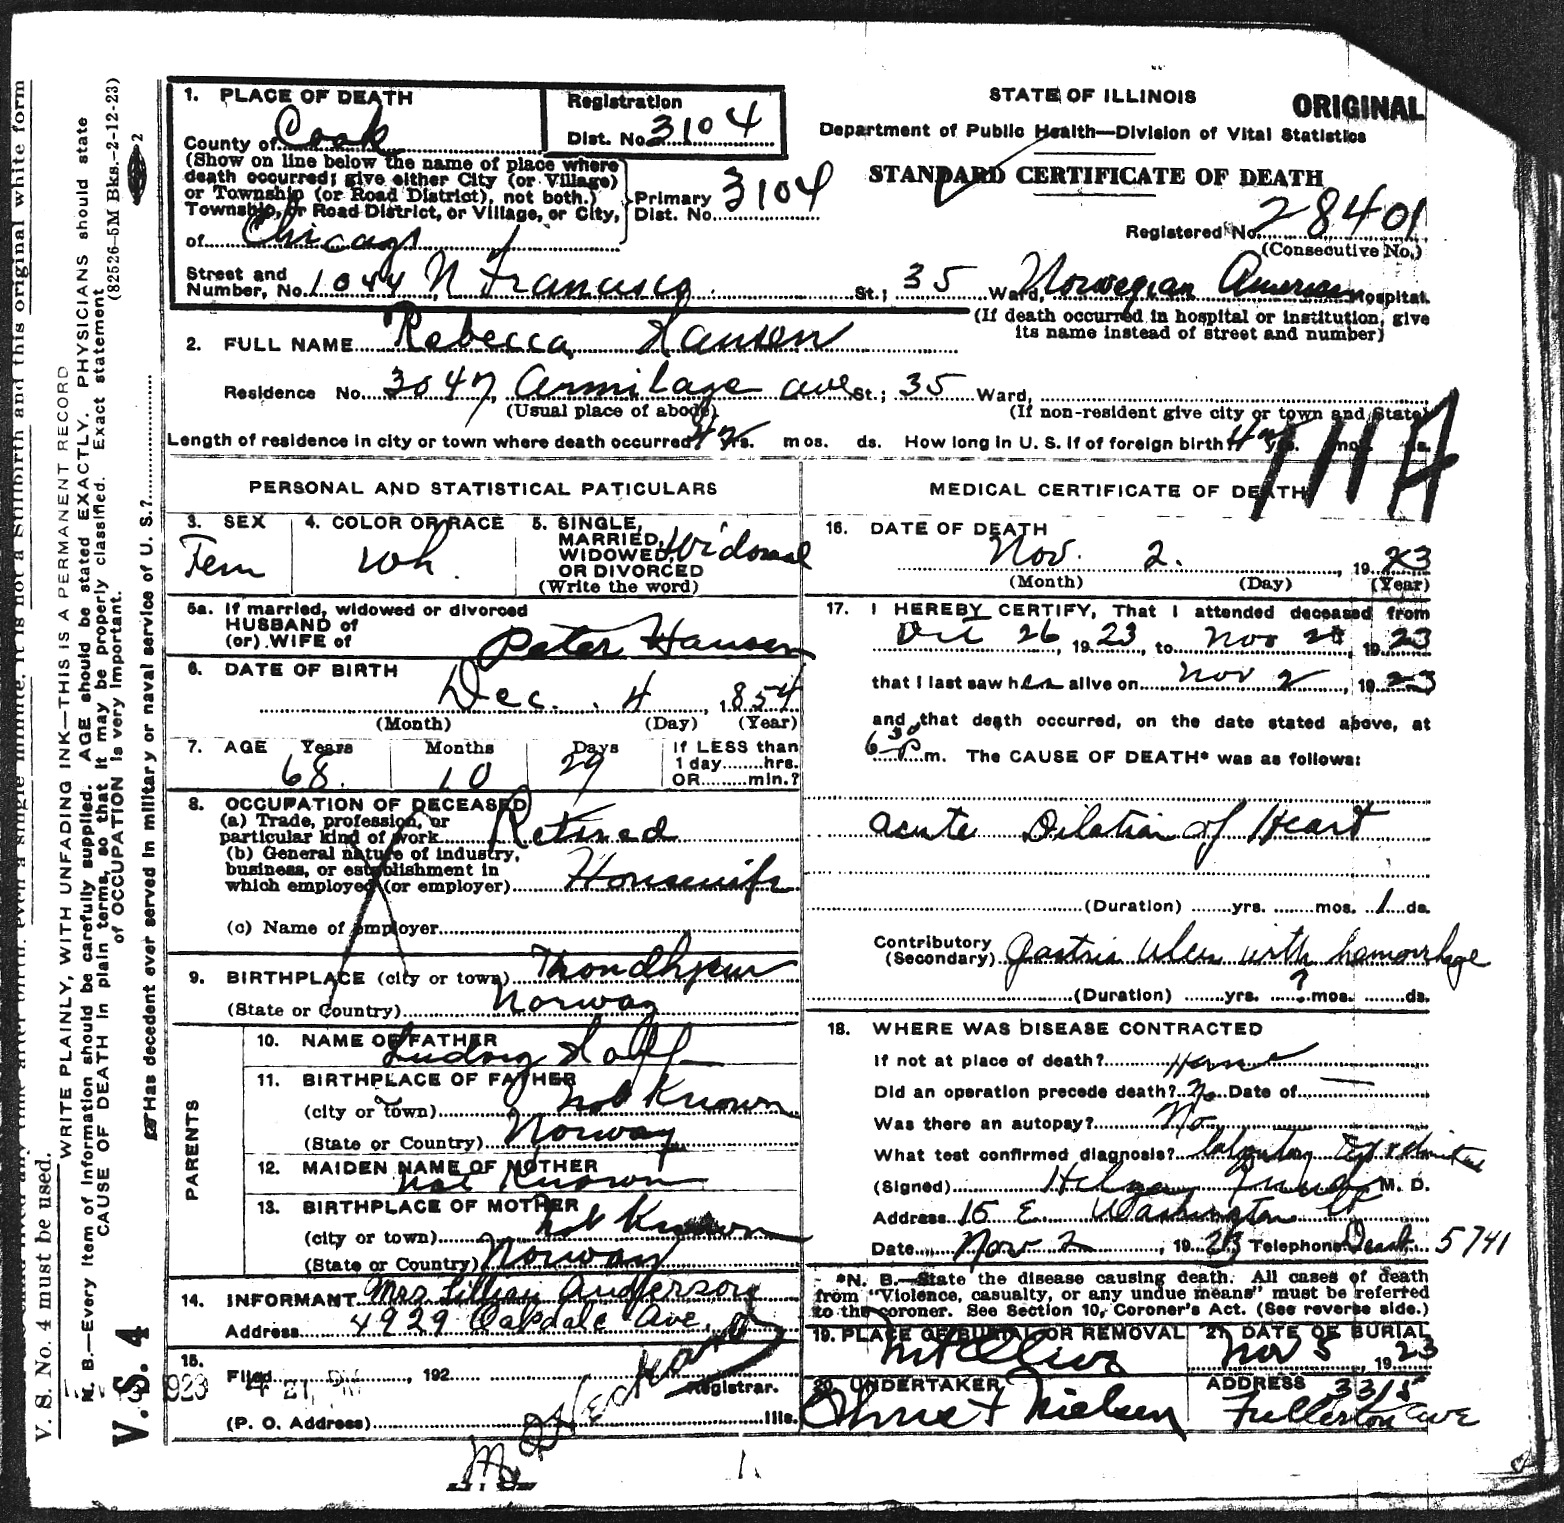 Connie nelsons genealogy death records index hansen rebecca 1betcityfo Image collections